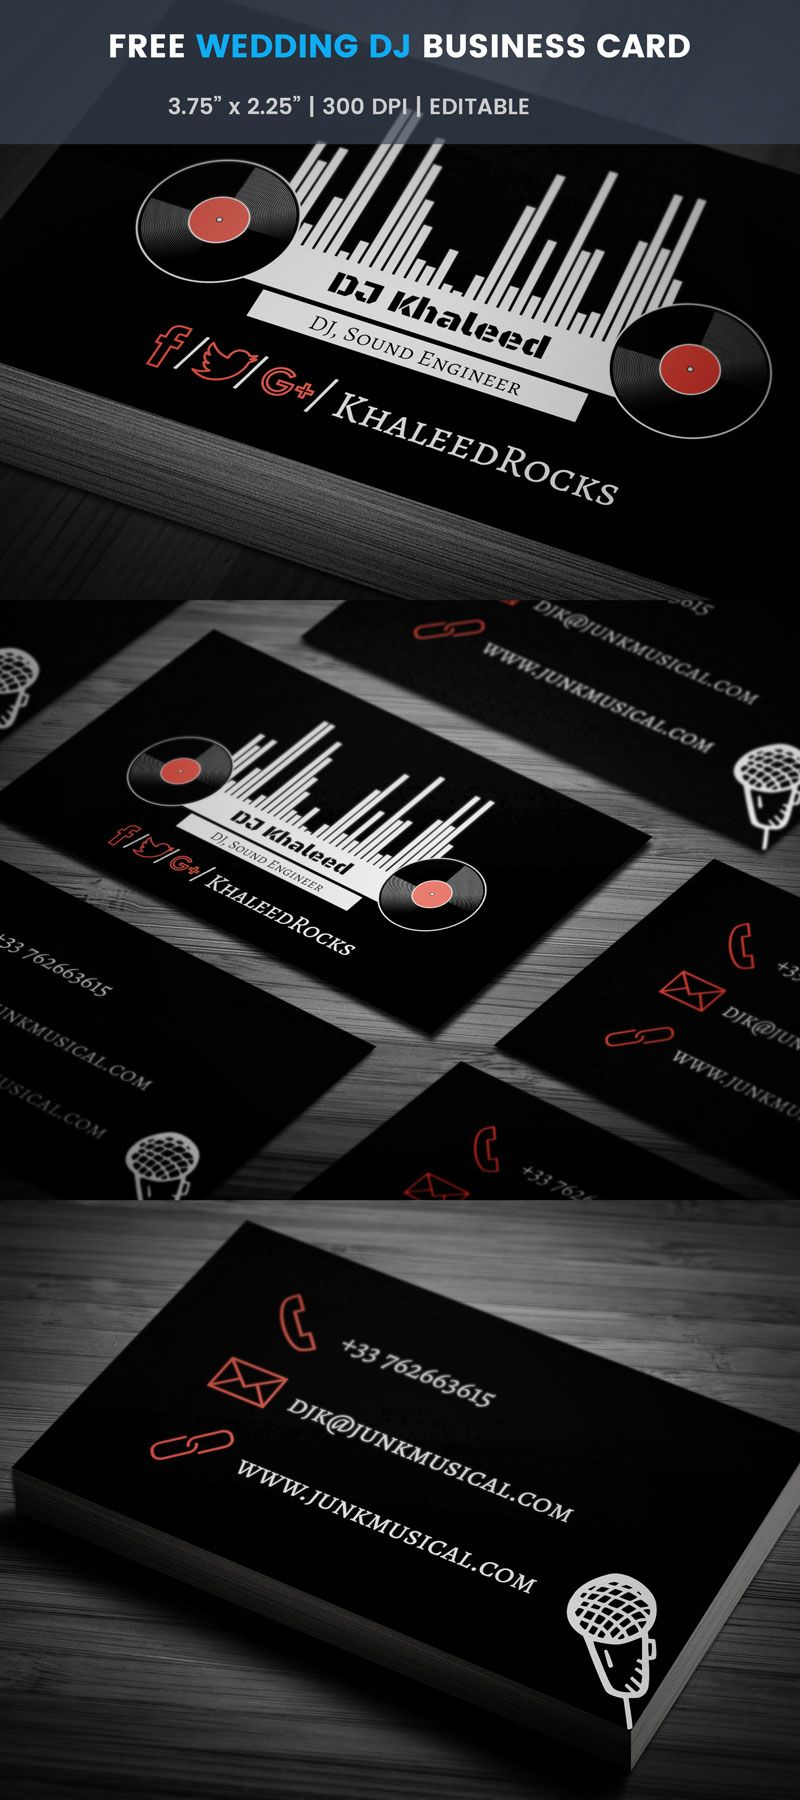 Wedding dj business card full preview free business card wedding dj business card full preview accmission Choice Image